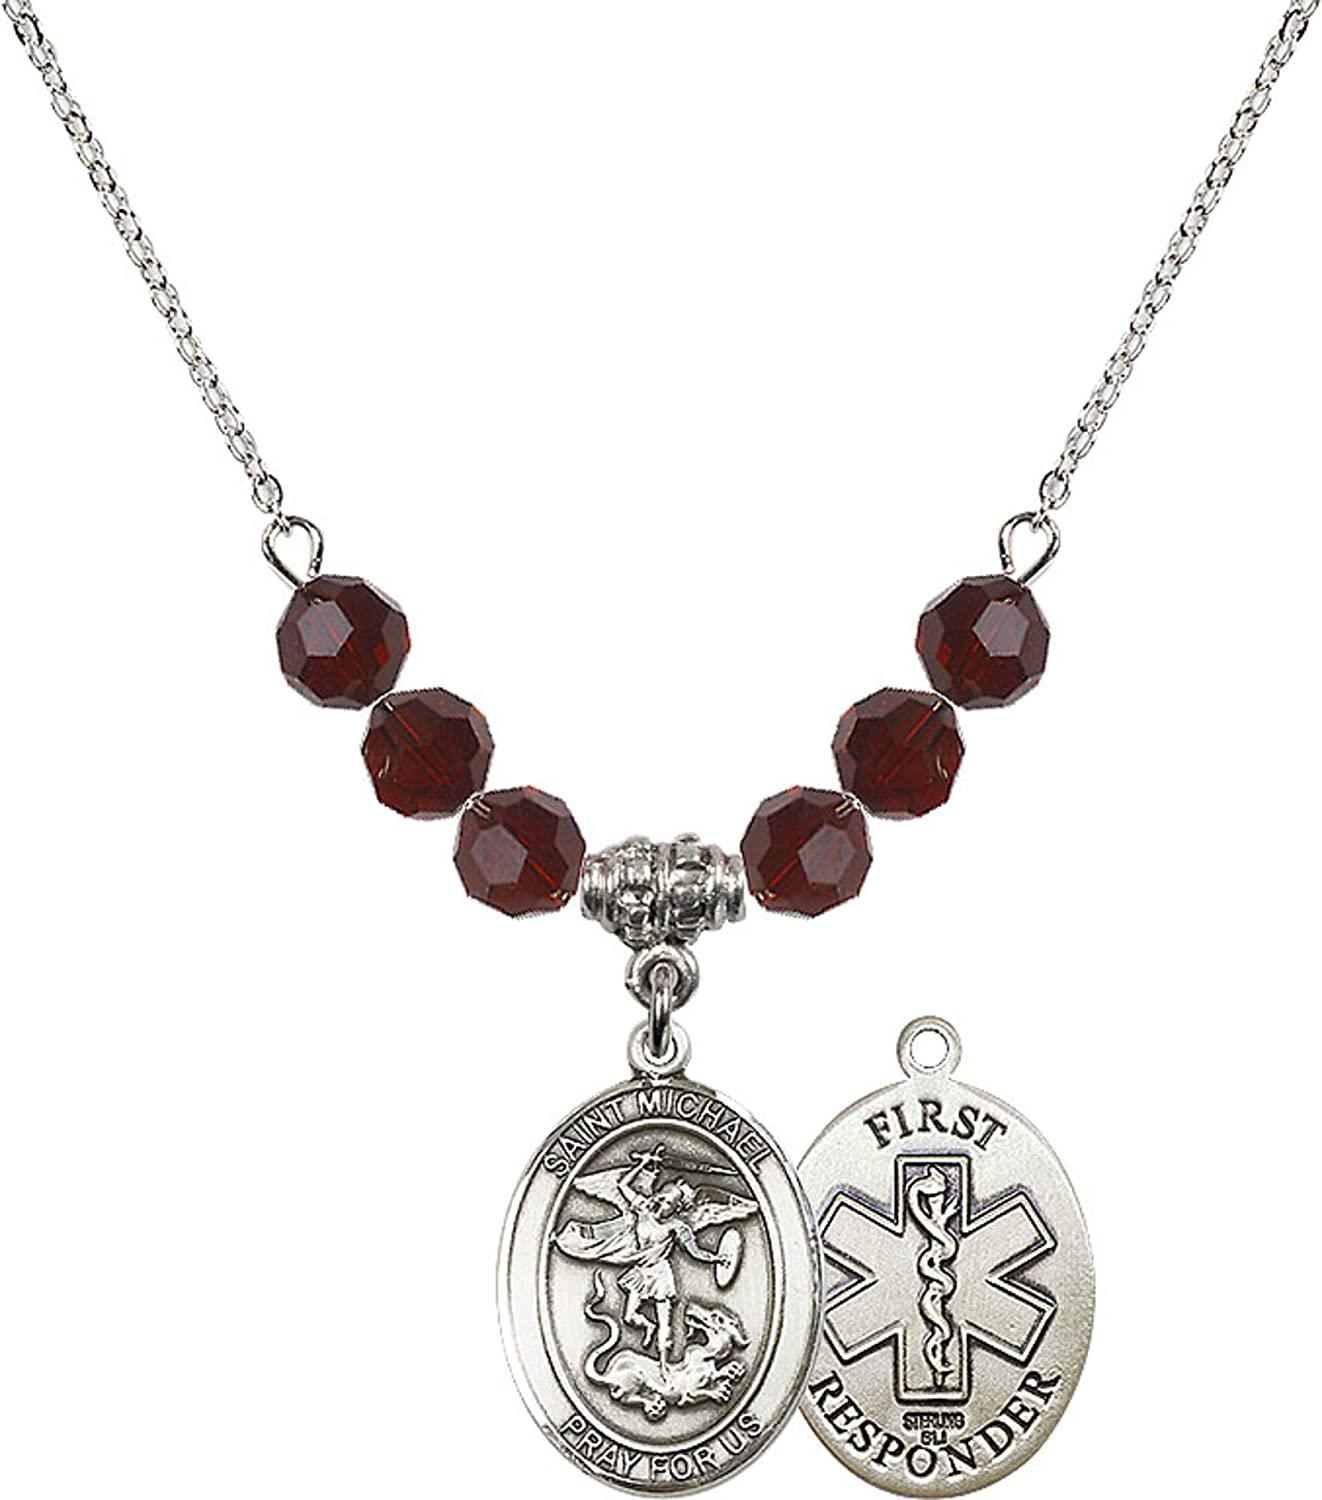 Bonyak Jewelry 18 Inch Rhodium Plated Necklace w// 6mm Red January Birth Month Stone Beads and Saint Michael//1St Responder Charm